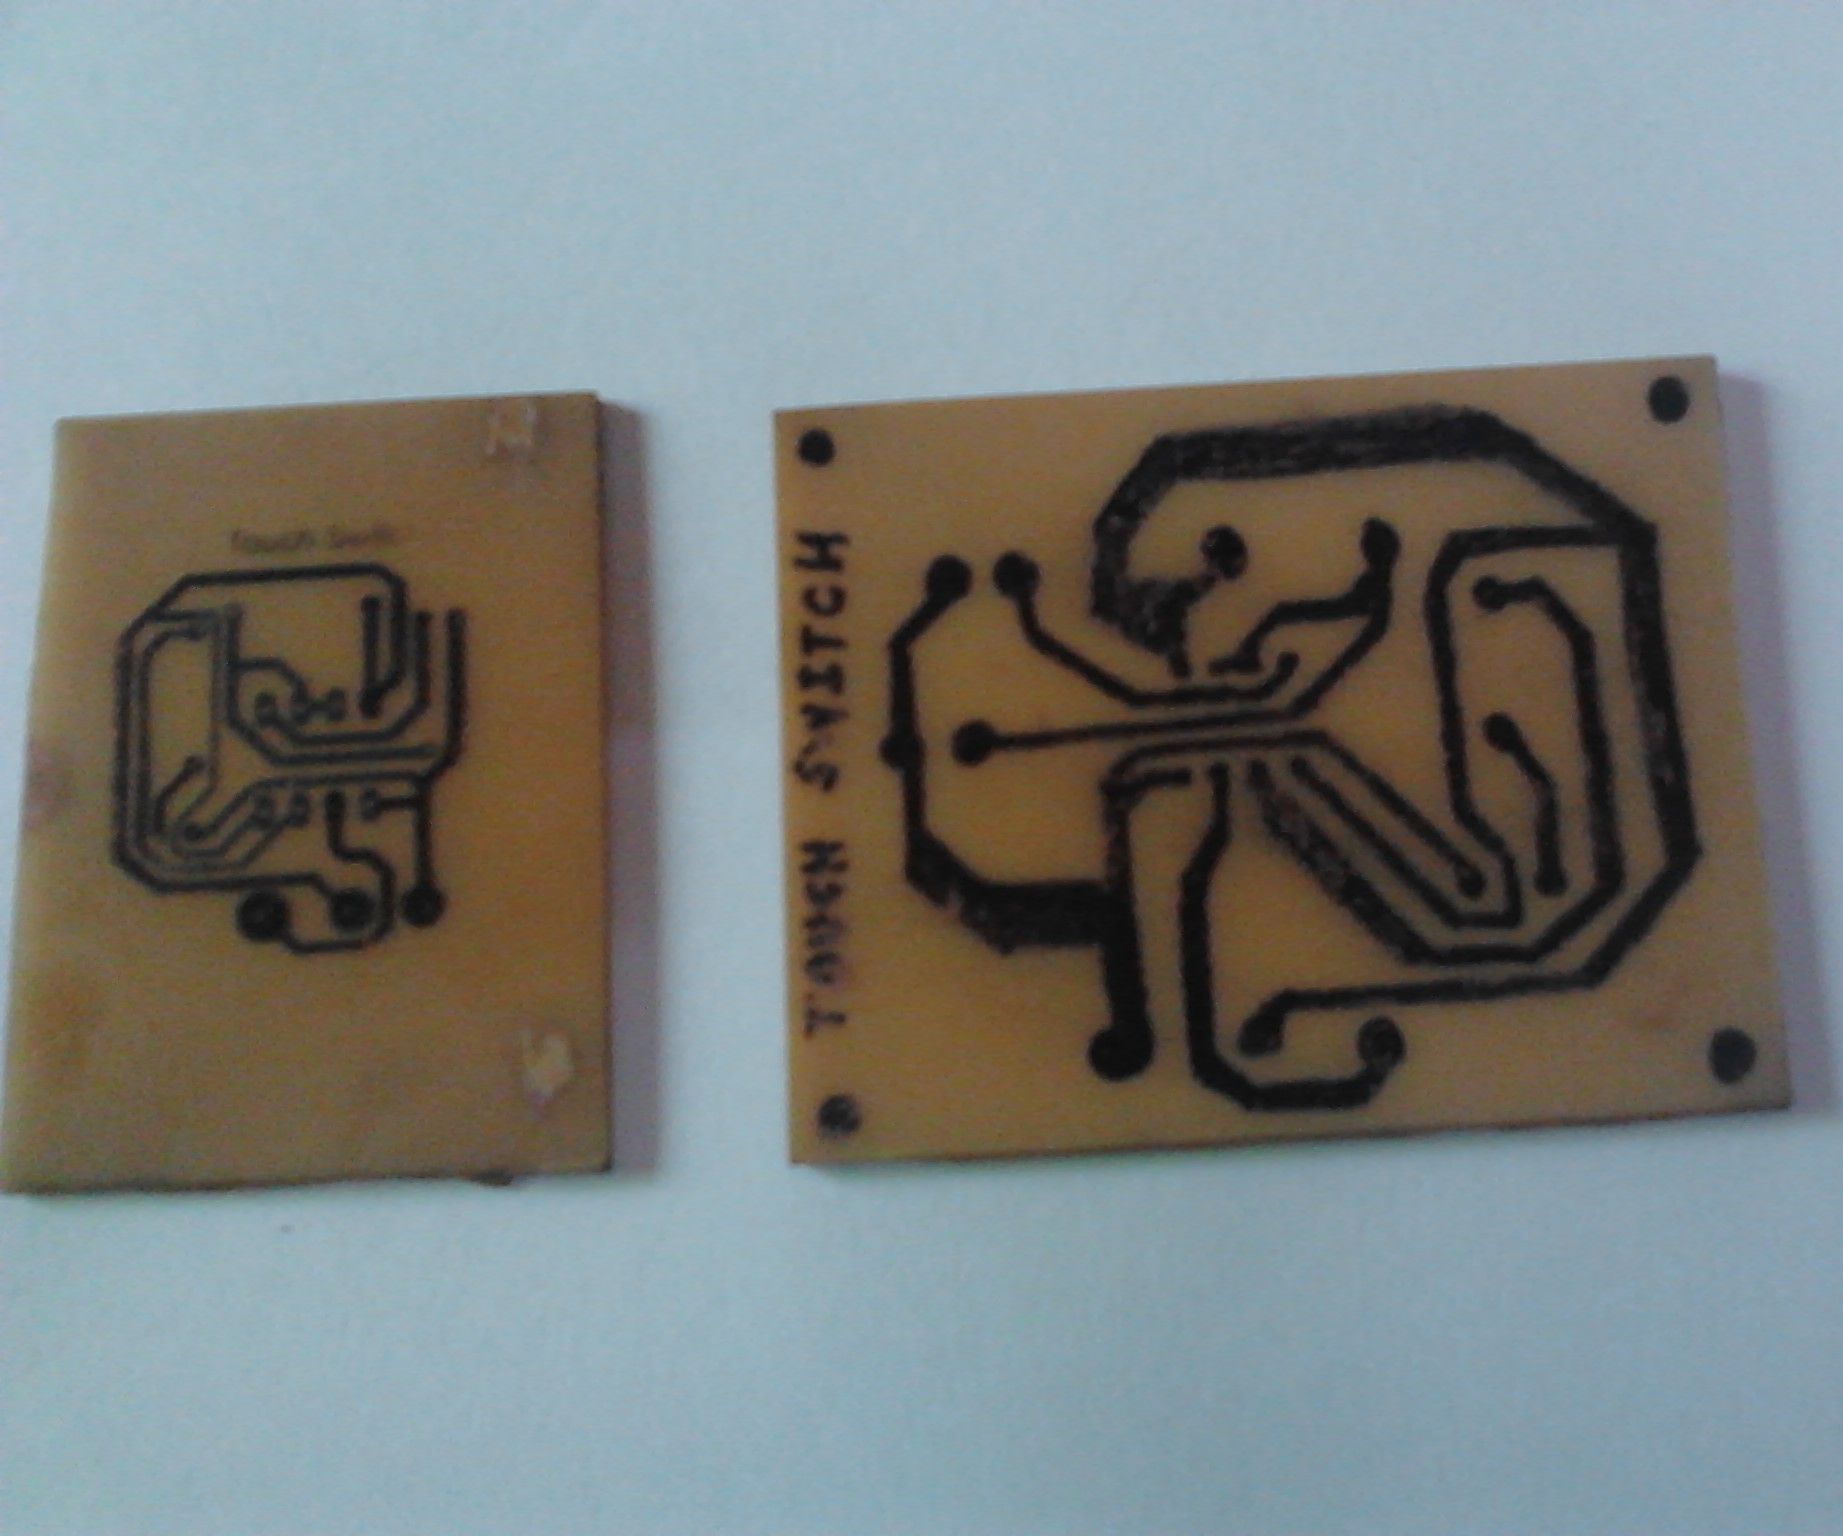 Home Made Printed Circuits By The Method Of Ironing Ingenuitydias